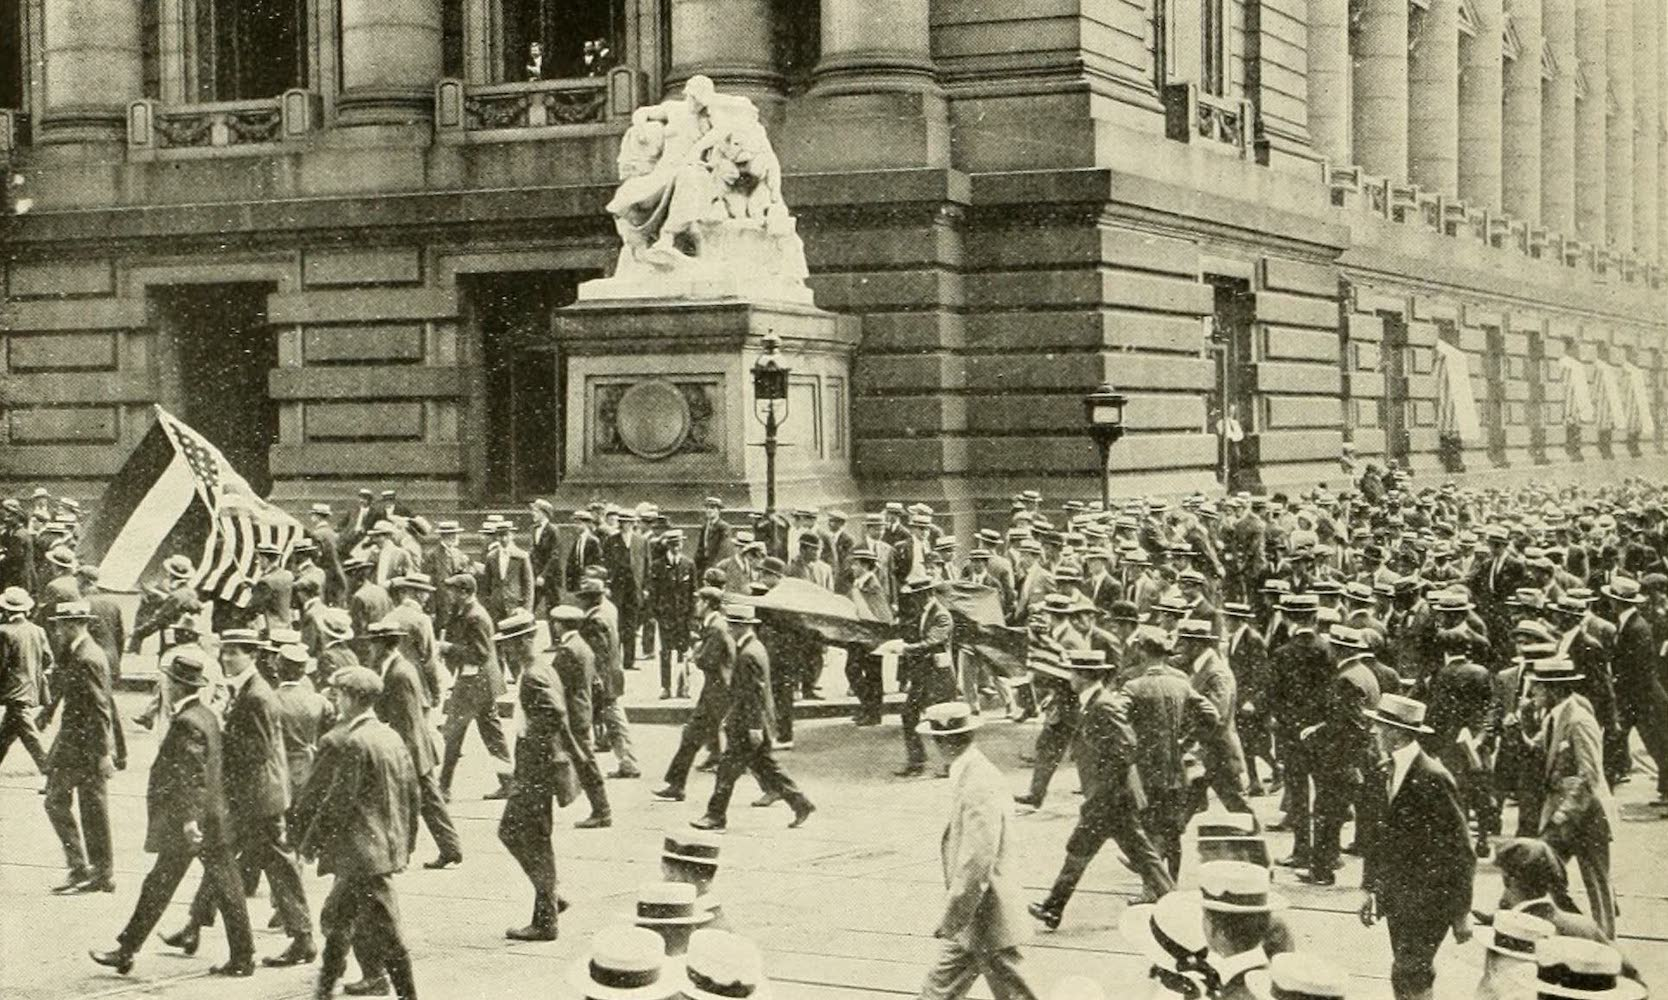 Laird & Lee's World's War Glimpses - German-Americans on Way to Enlist (1914)